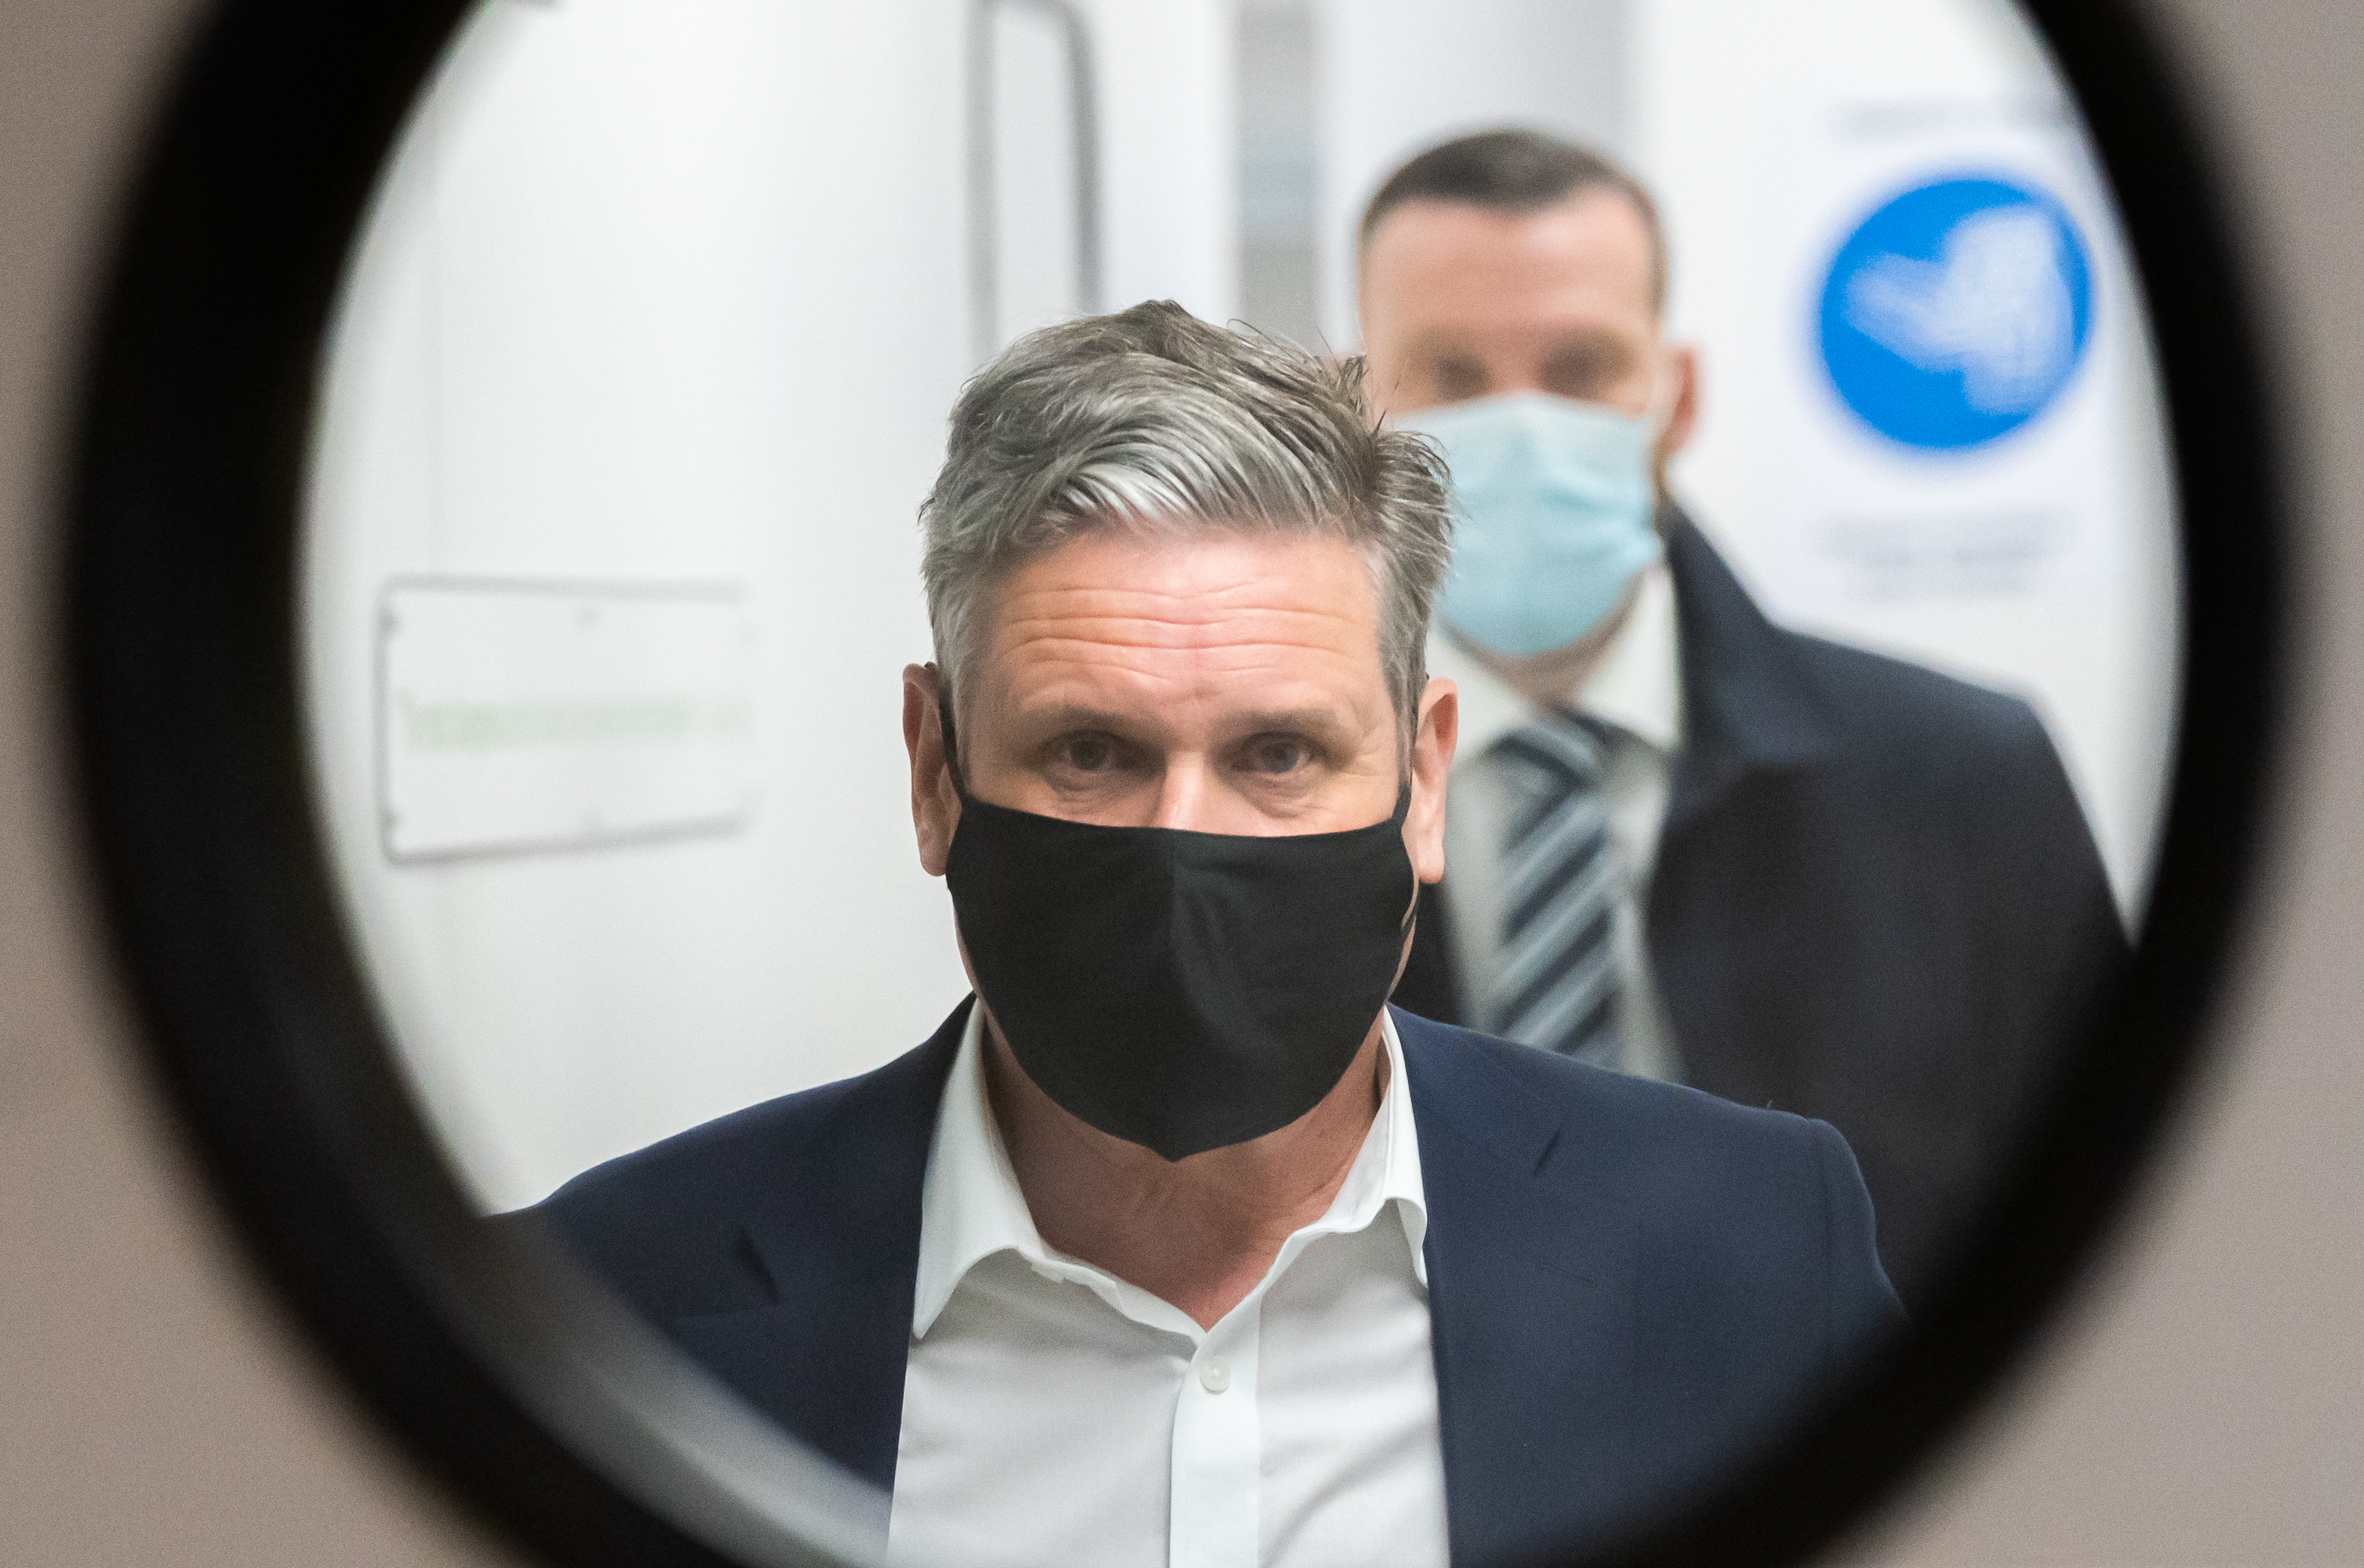 <p>Labour leader Sir Keir Starmer is shown a pair of night vision goggles while on a campaign visit to tech firm Qioptiq in St Asaph, North Wales. Picture date: Tuesday April 4, 2021.</p>